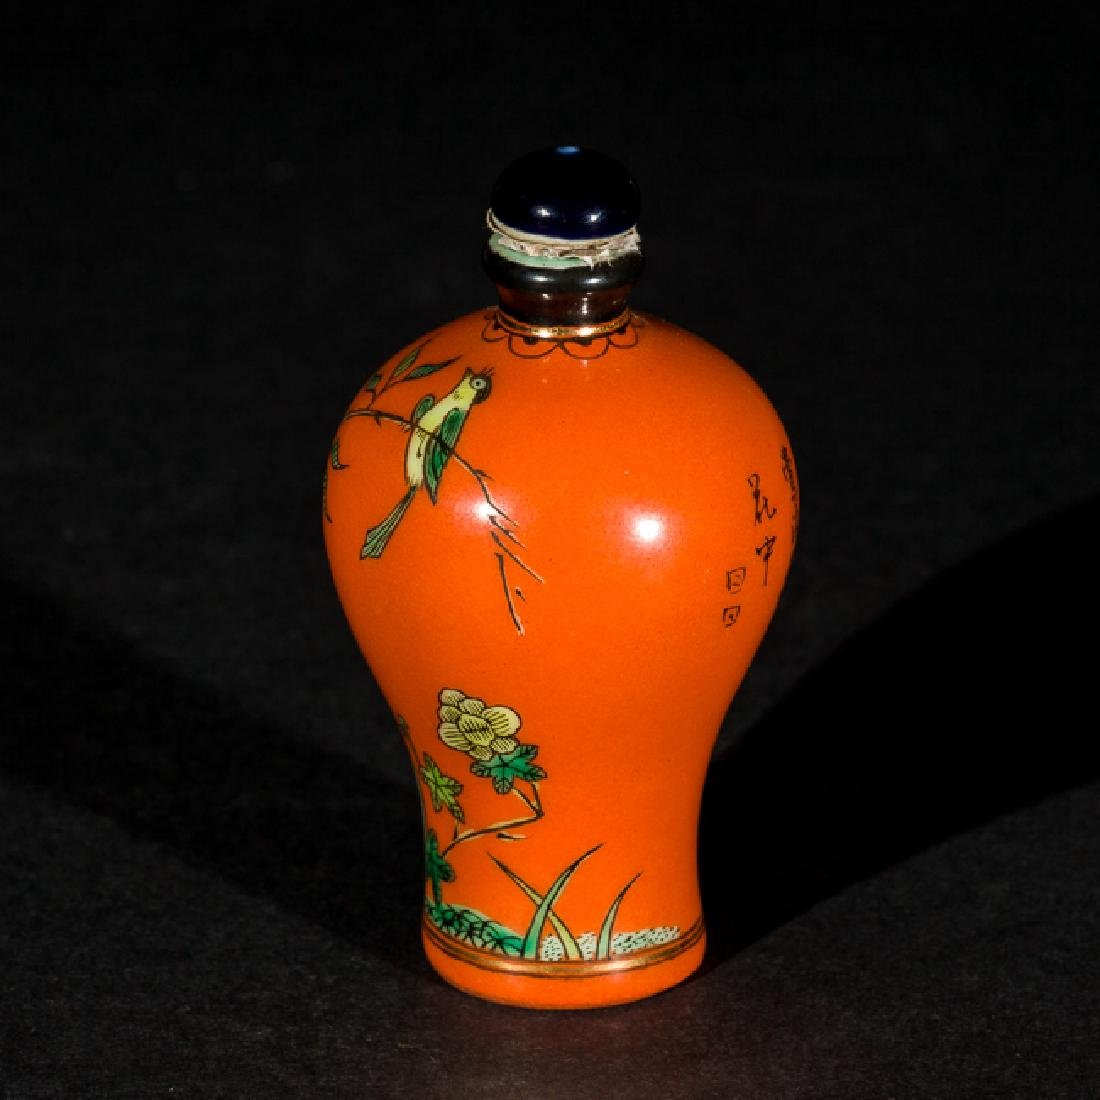 Antique Porcelain Snuff Bottle, Early 20th Century - 2